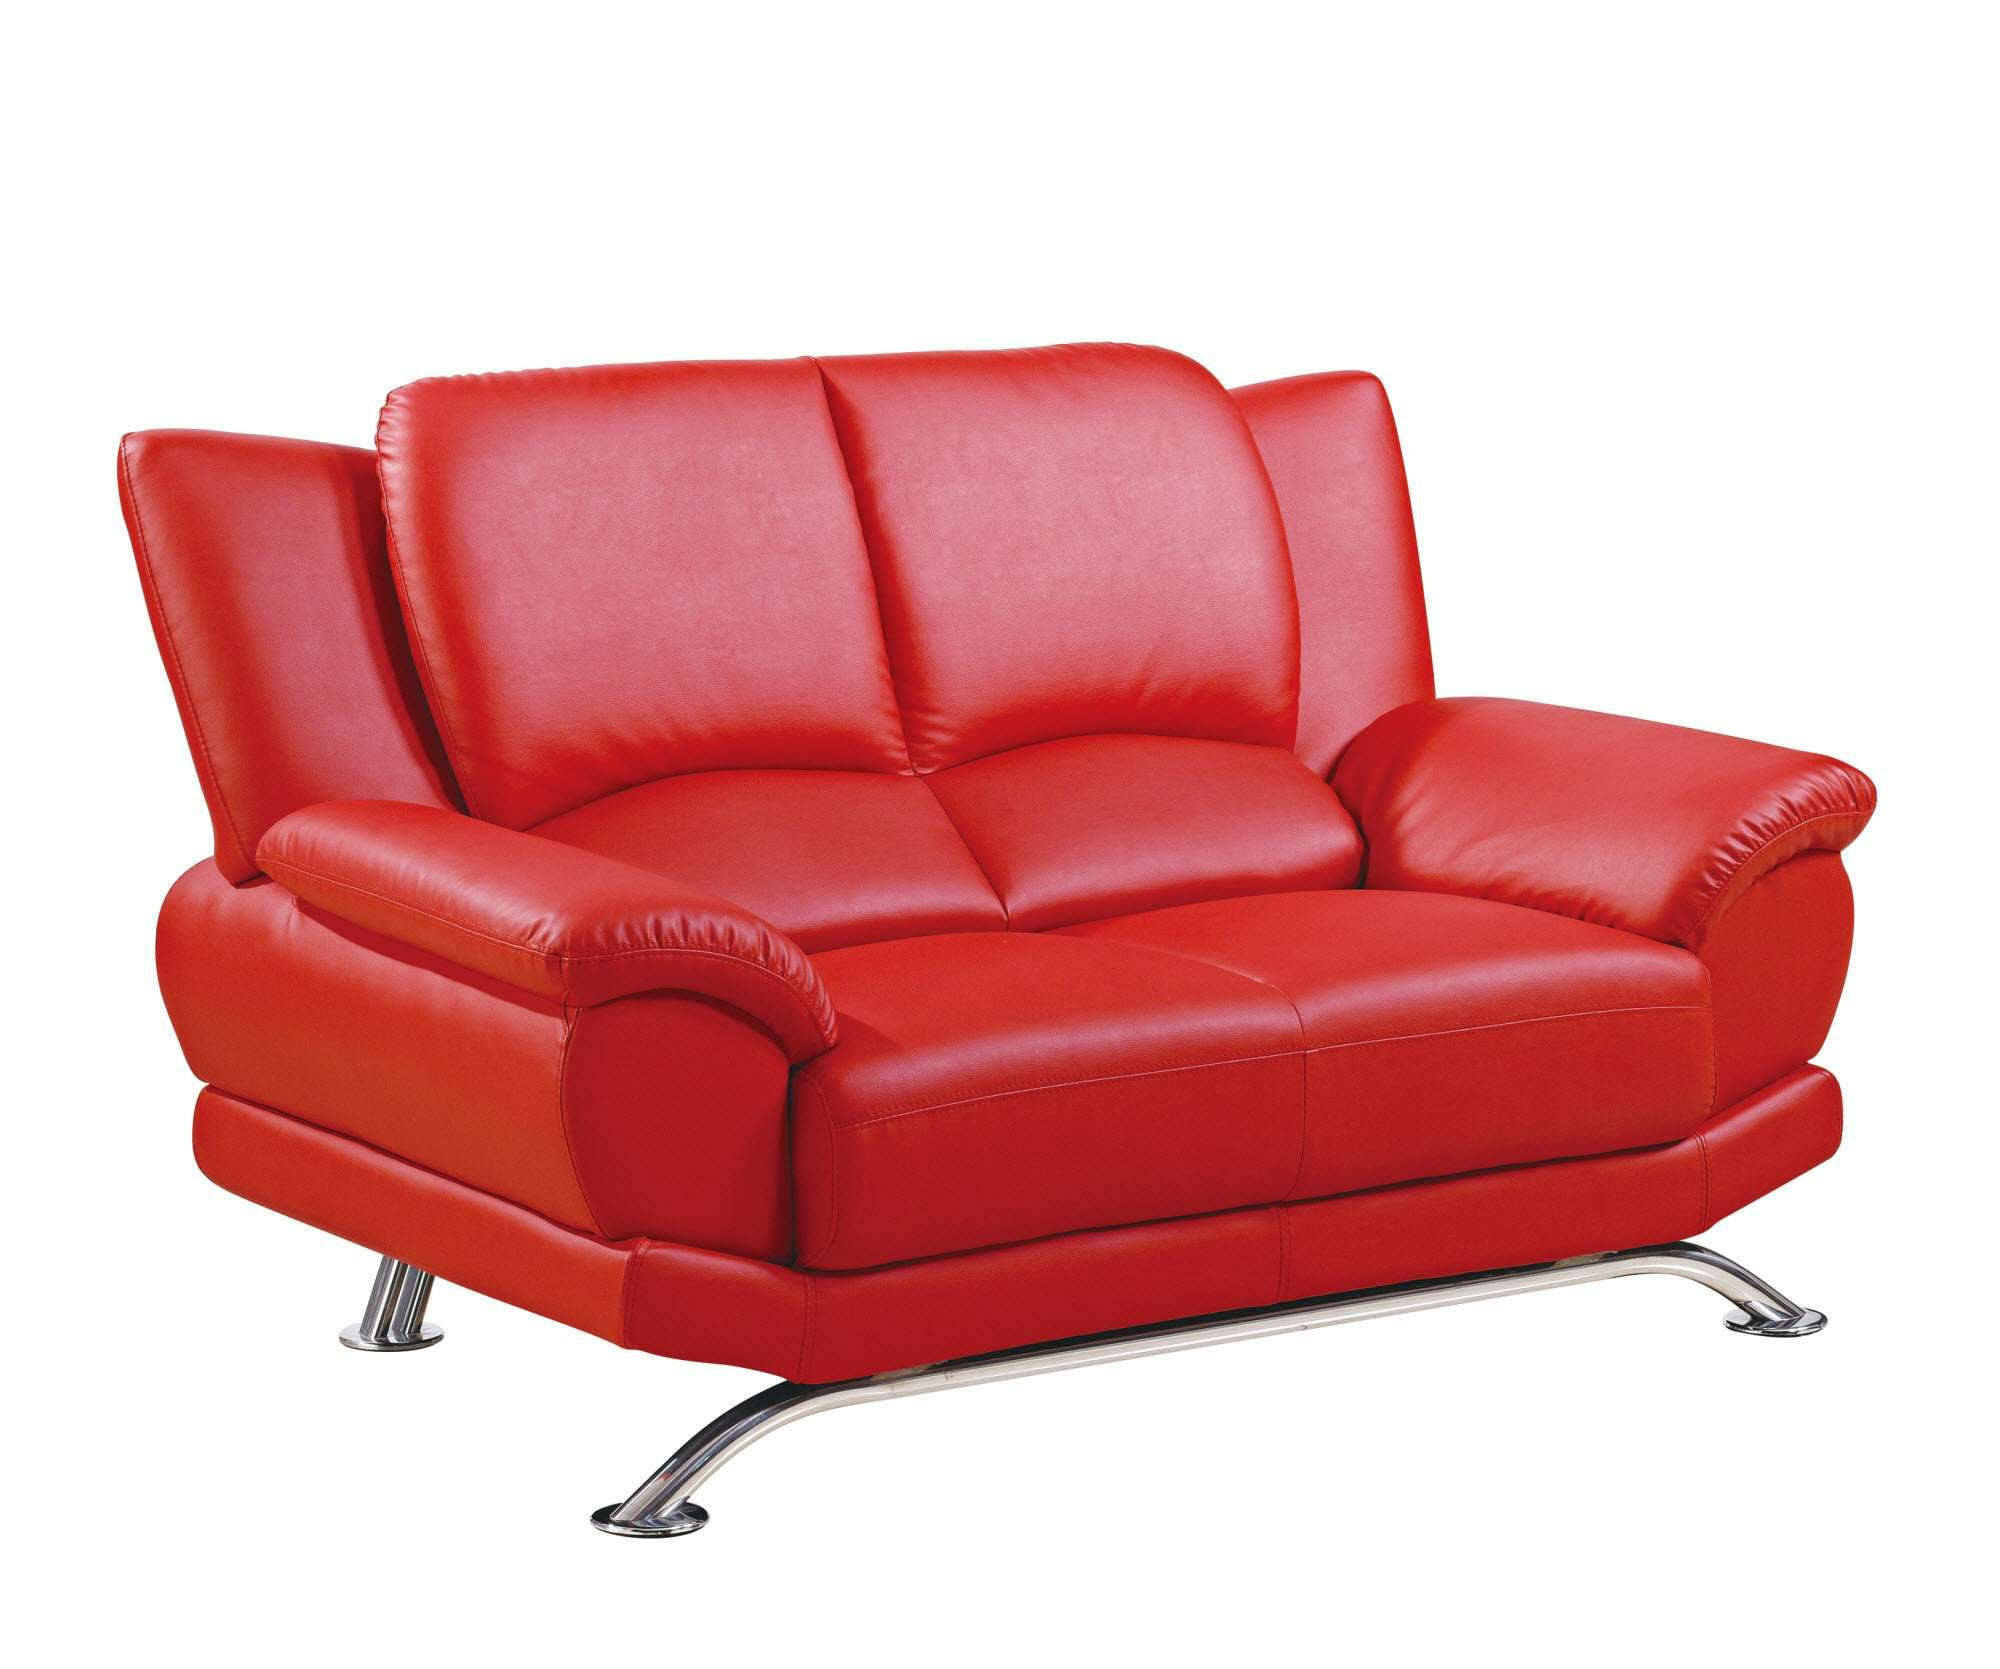 Lowest Price On Global Red Bonded Leather Loveseat With Chrome Legs U9908 R6v Red L M Shop Today Global Furniture Usa Furniture Bonded Leather Chair